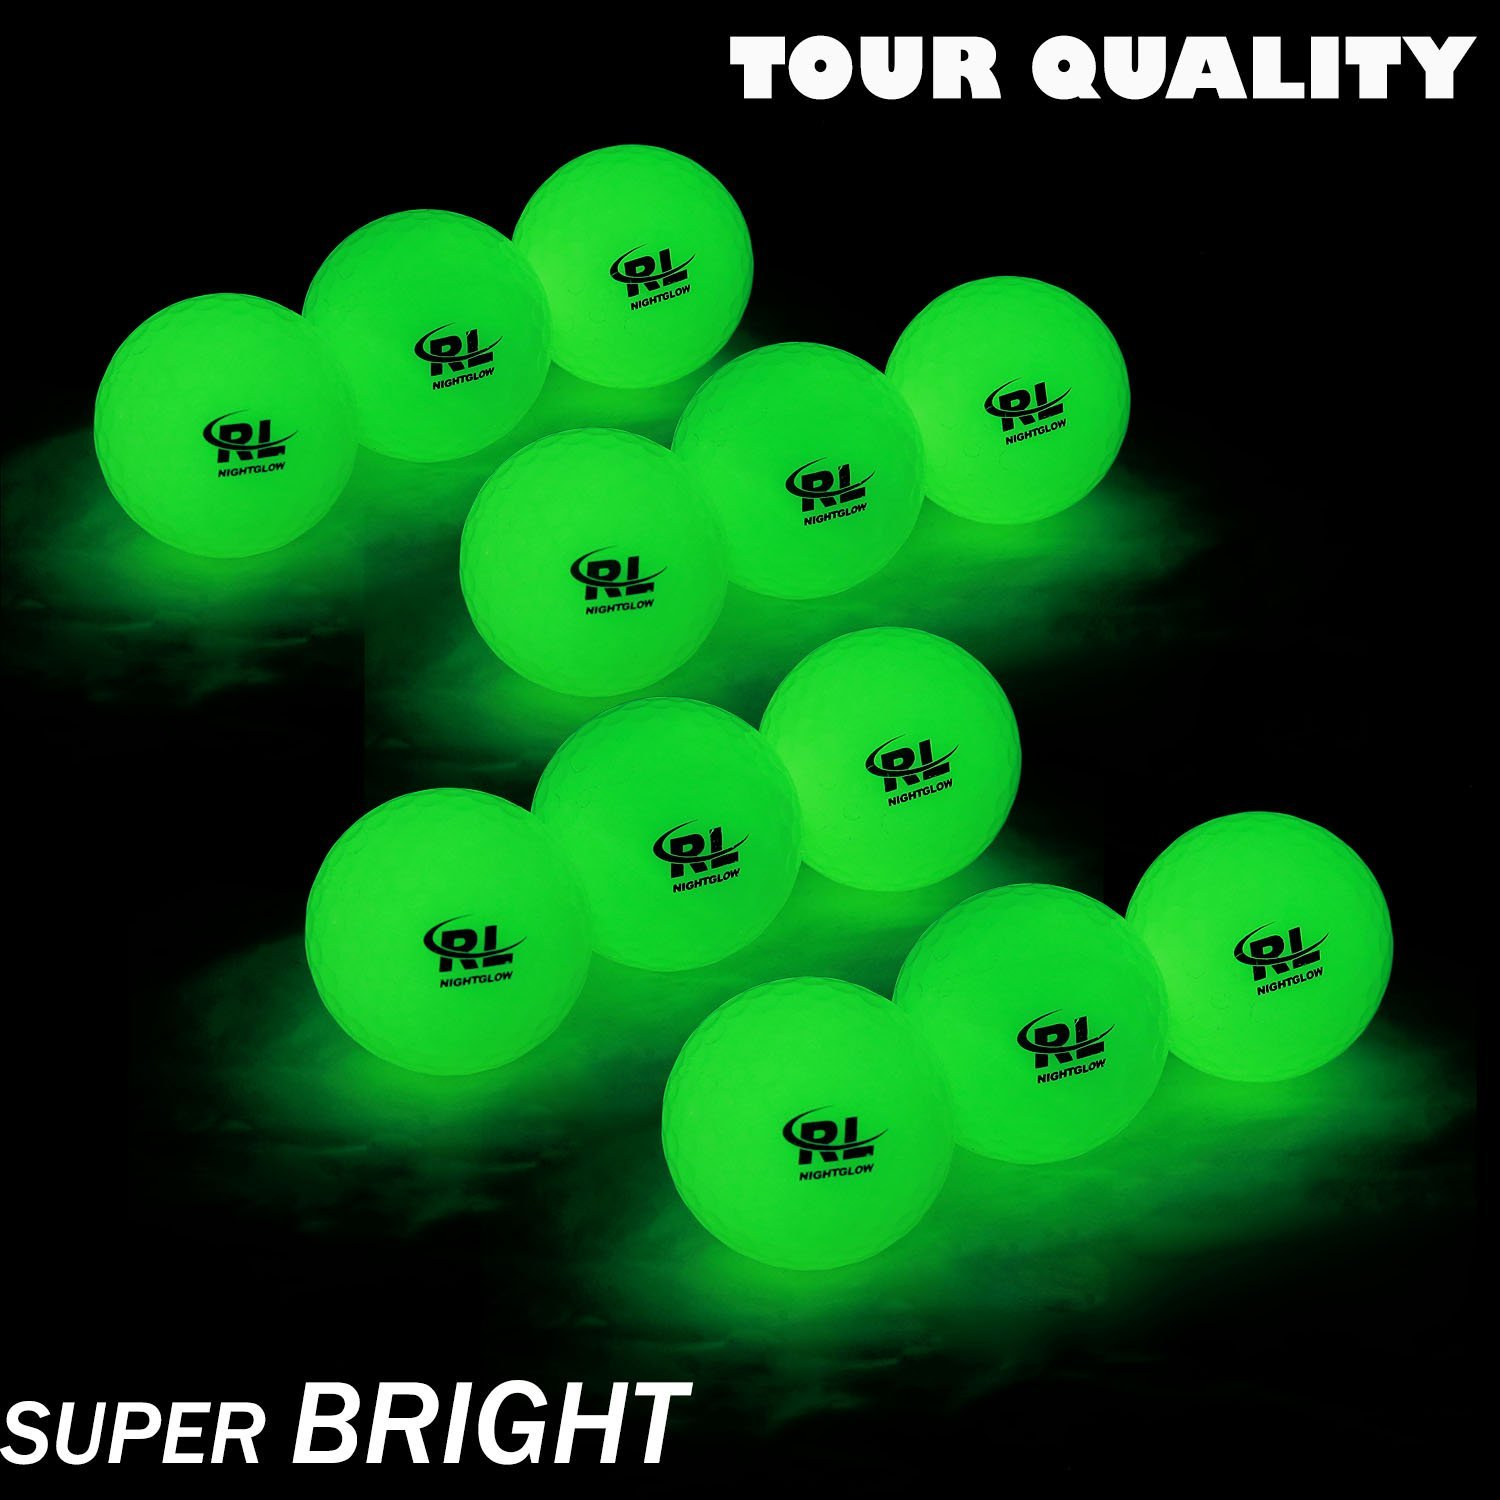 R&L Night Golf Balls Glow in the Dark - Best Hitting Tournament Fluorescent Golf Ball- Long Lasting Bright Luminous Balls Rechargeable with Any Flashlight - NO LED Inside